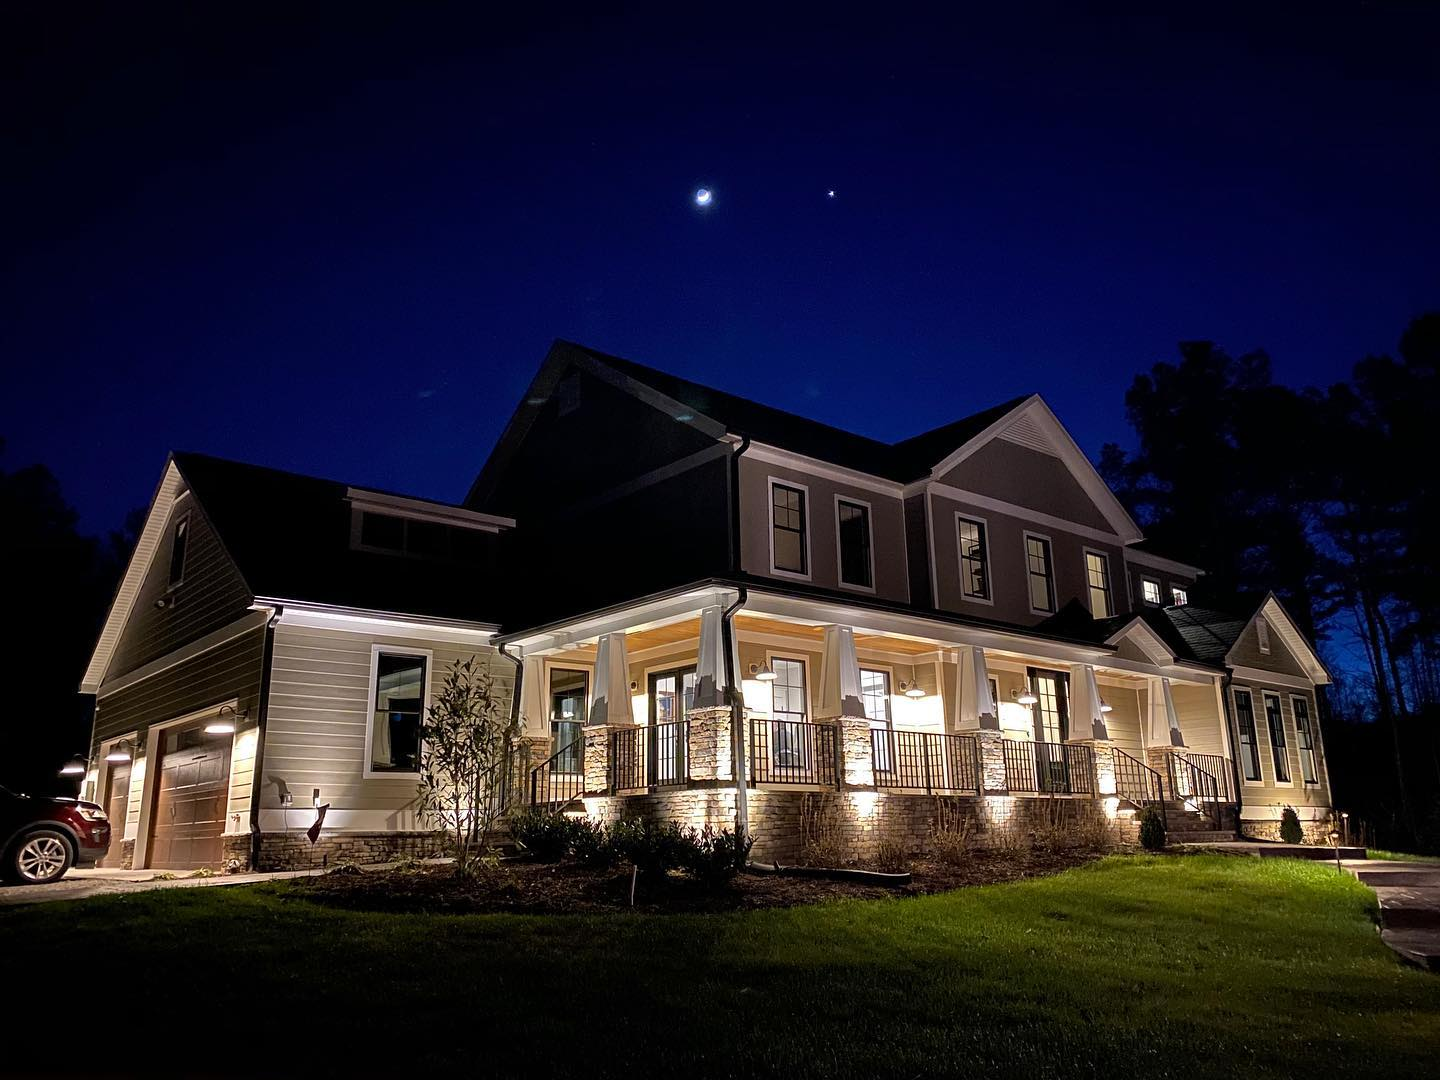 Elegant outdoor lighting solutions from Livewire.